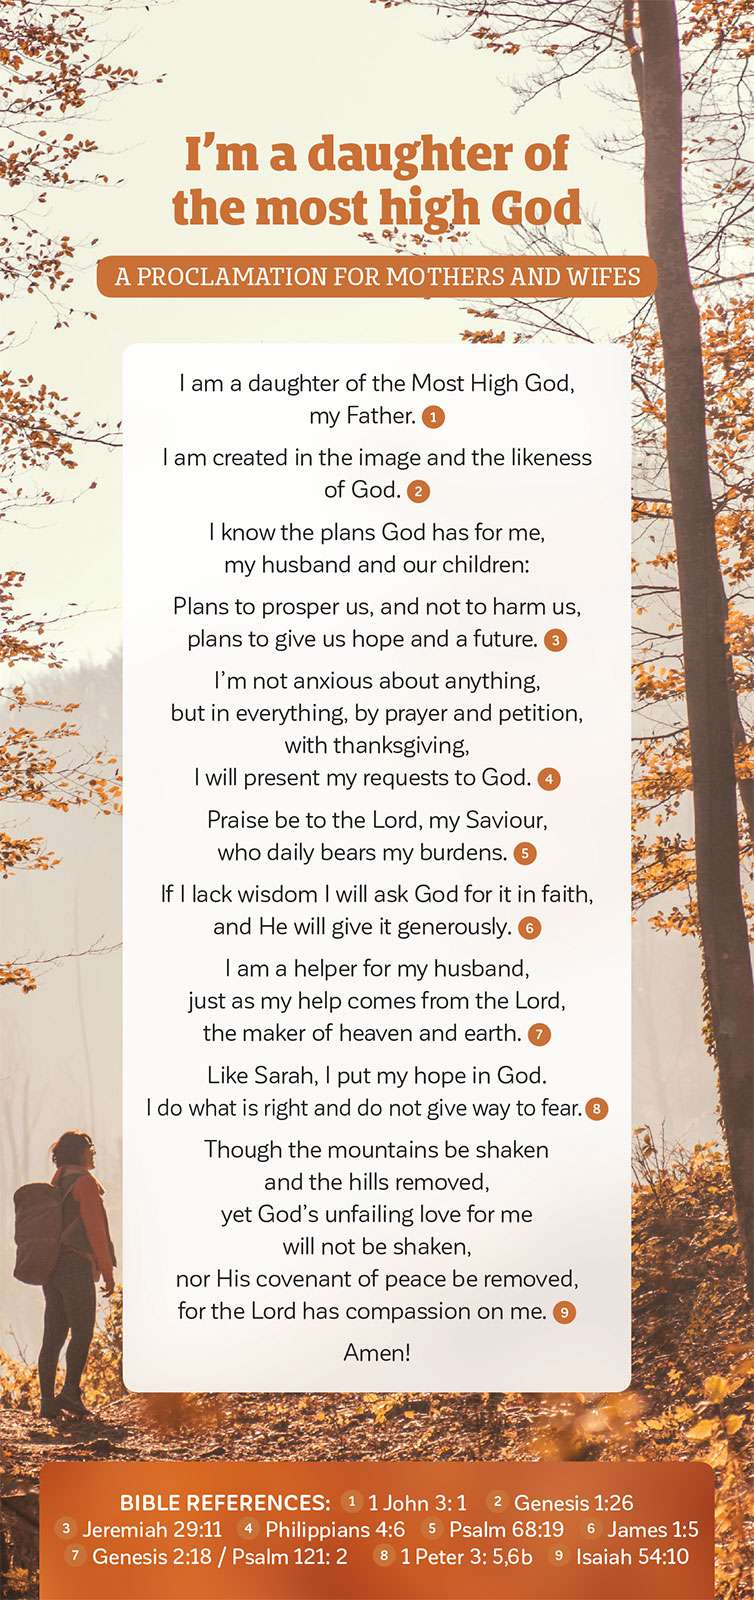 Proclamation of A Daughter of the Most High God